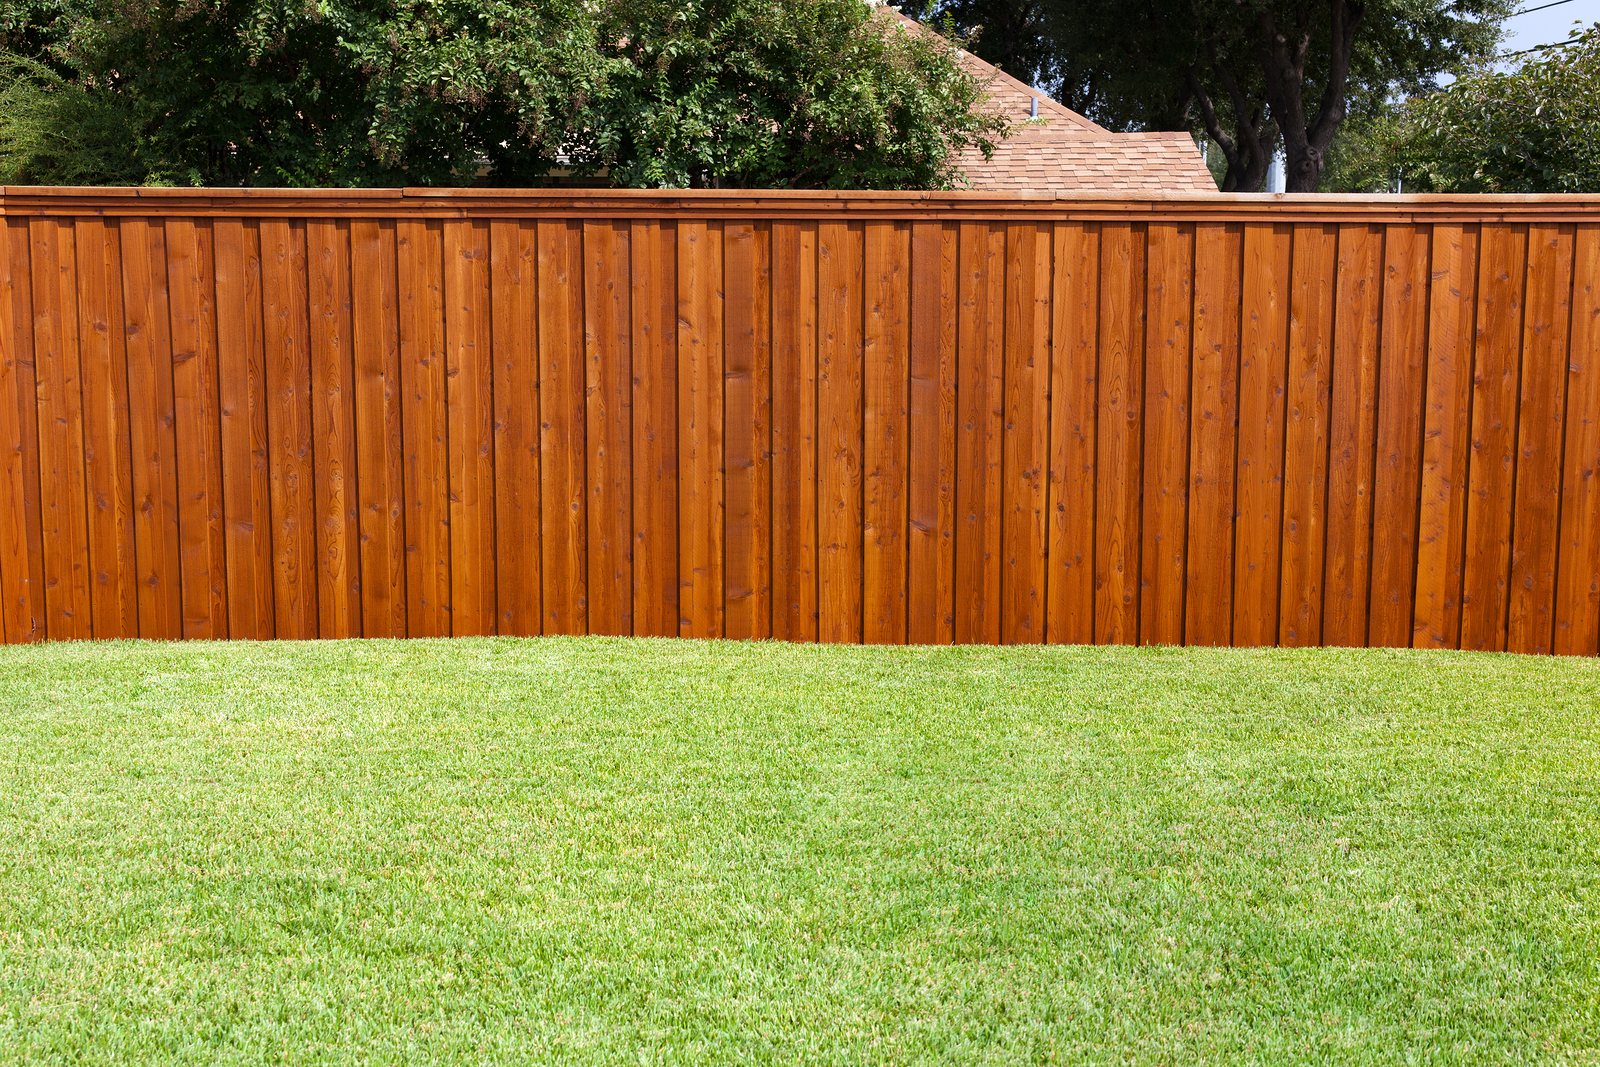 6 Reasons To Install A Fence Around Your Backyard Themocracy inside Fence For Backyard